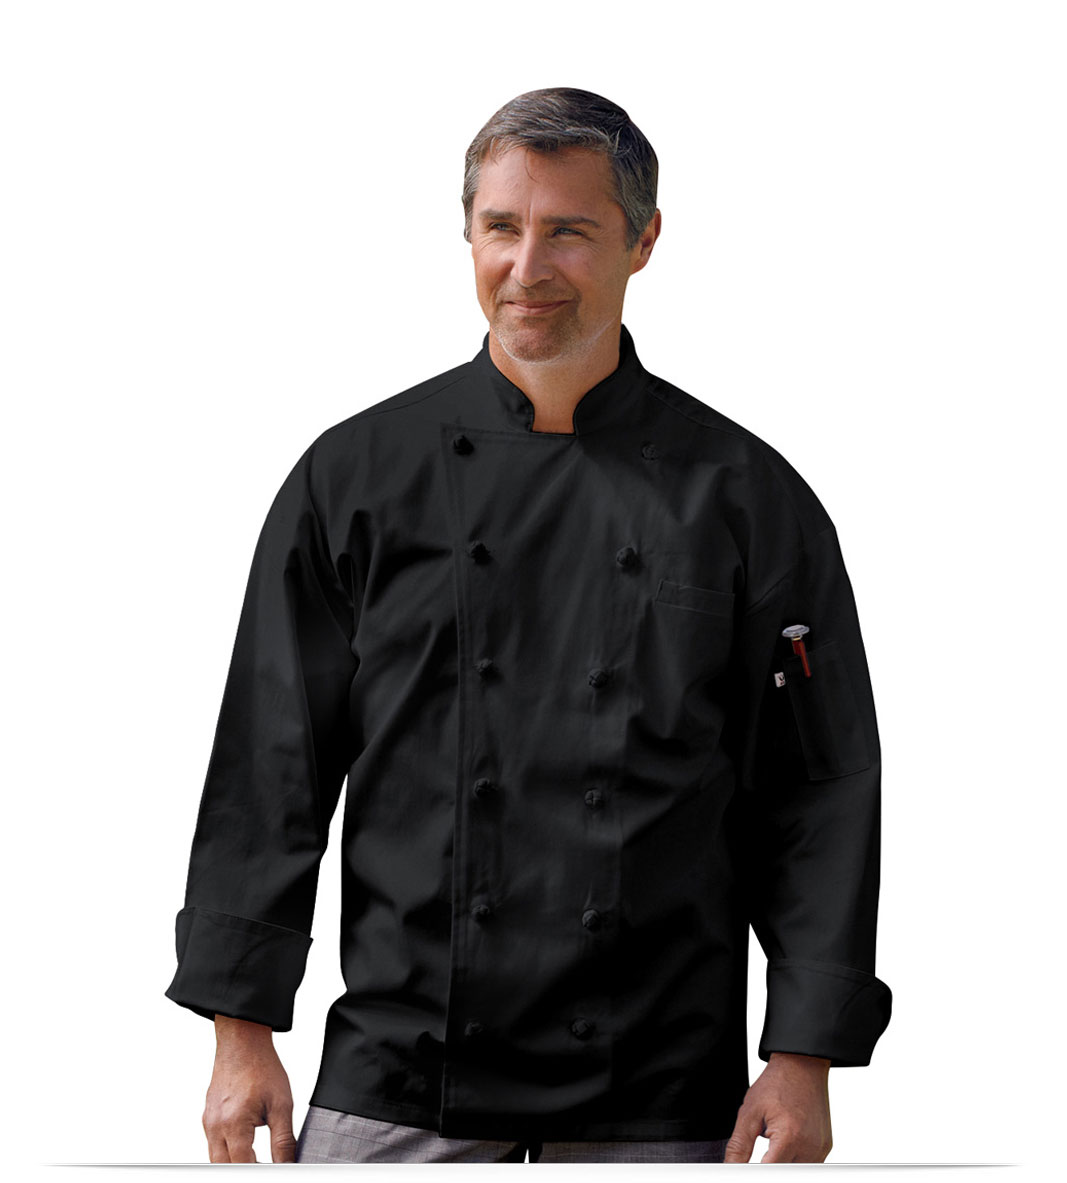 Custom Embroidered Chef's Jacket Executive